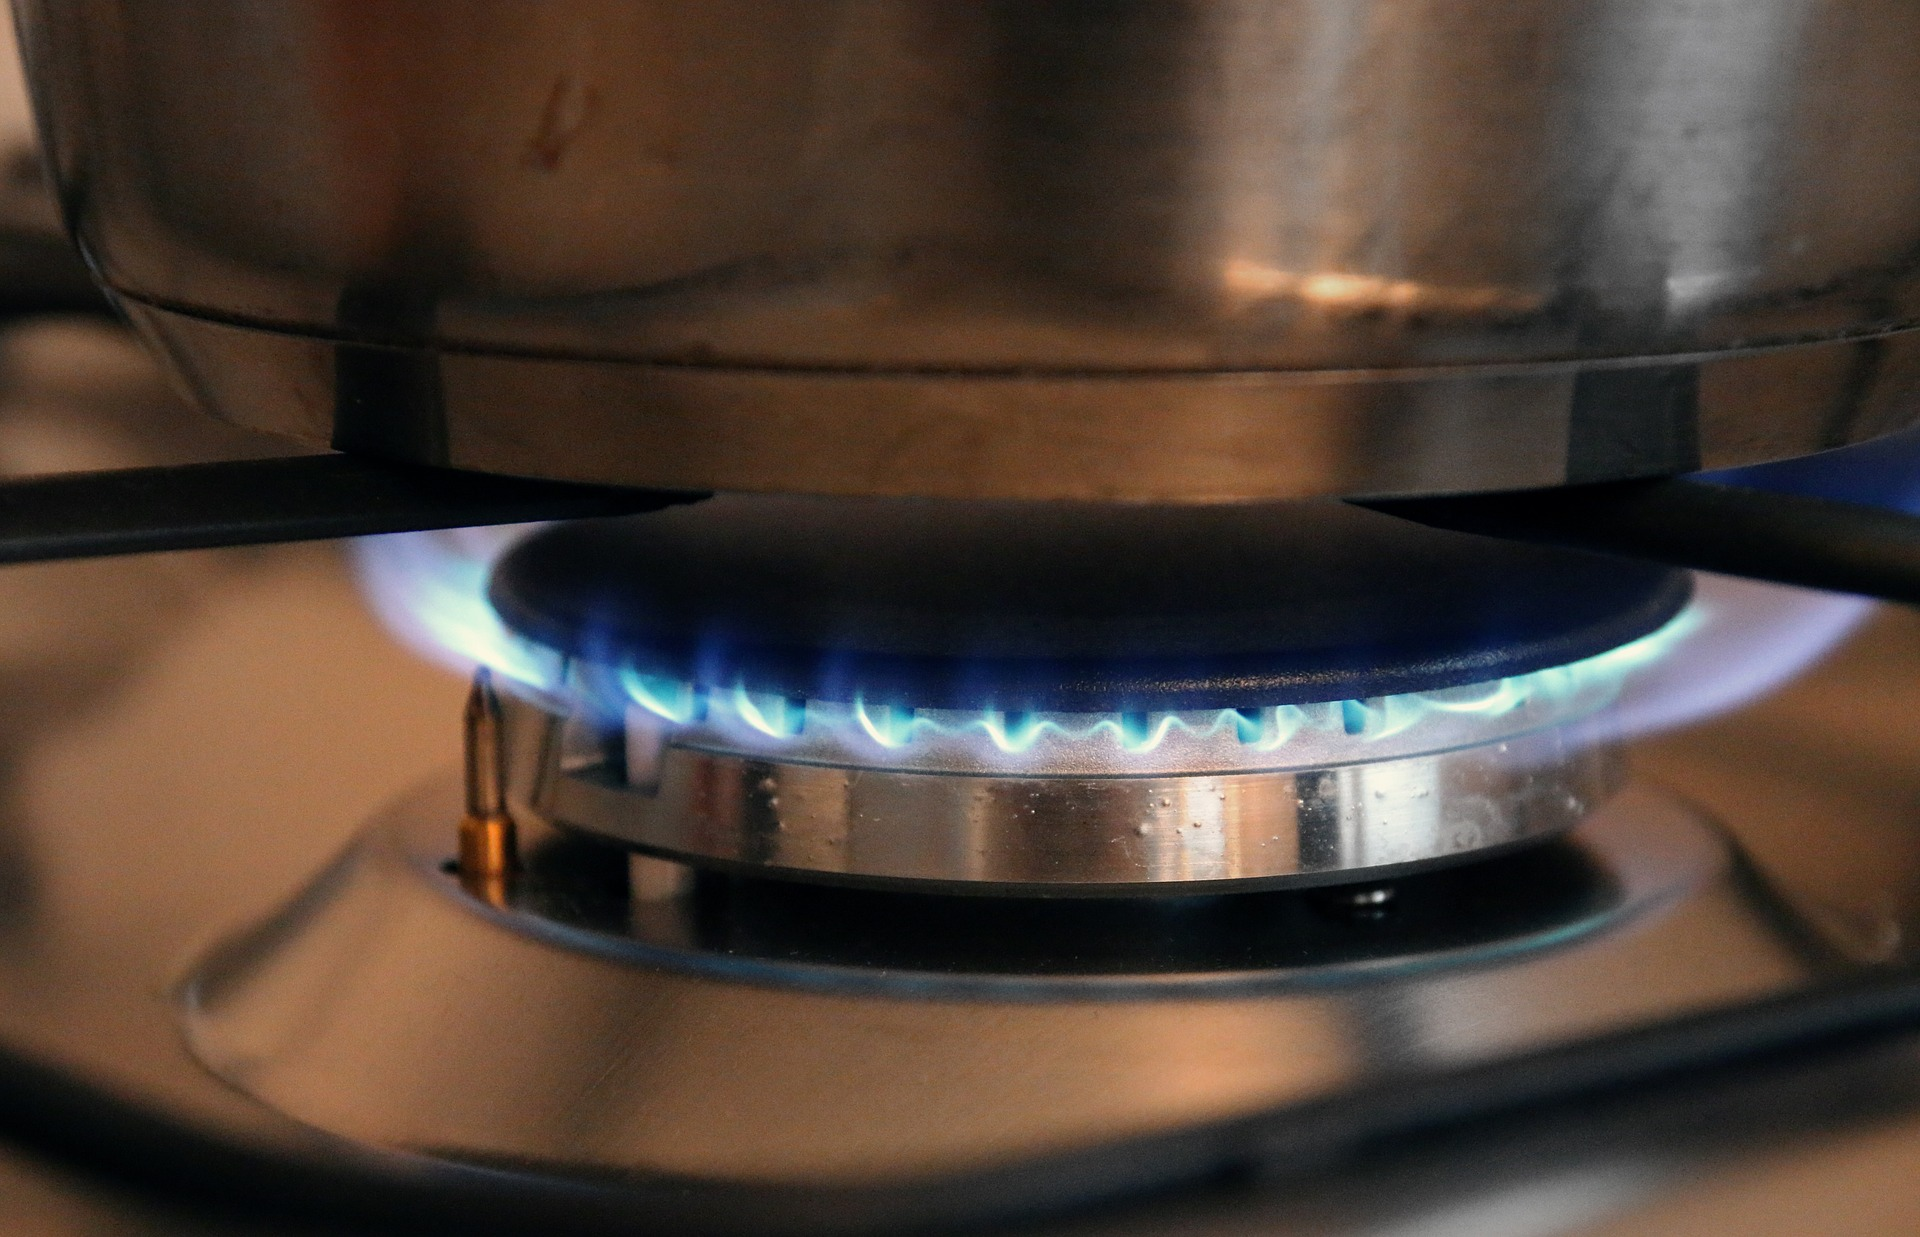 Image shows a lit gas stove burner. The flames are blue and there is a pot on the burner.